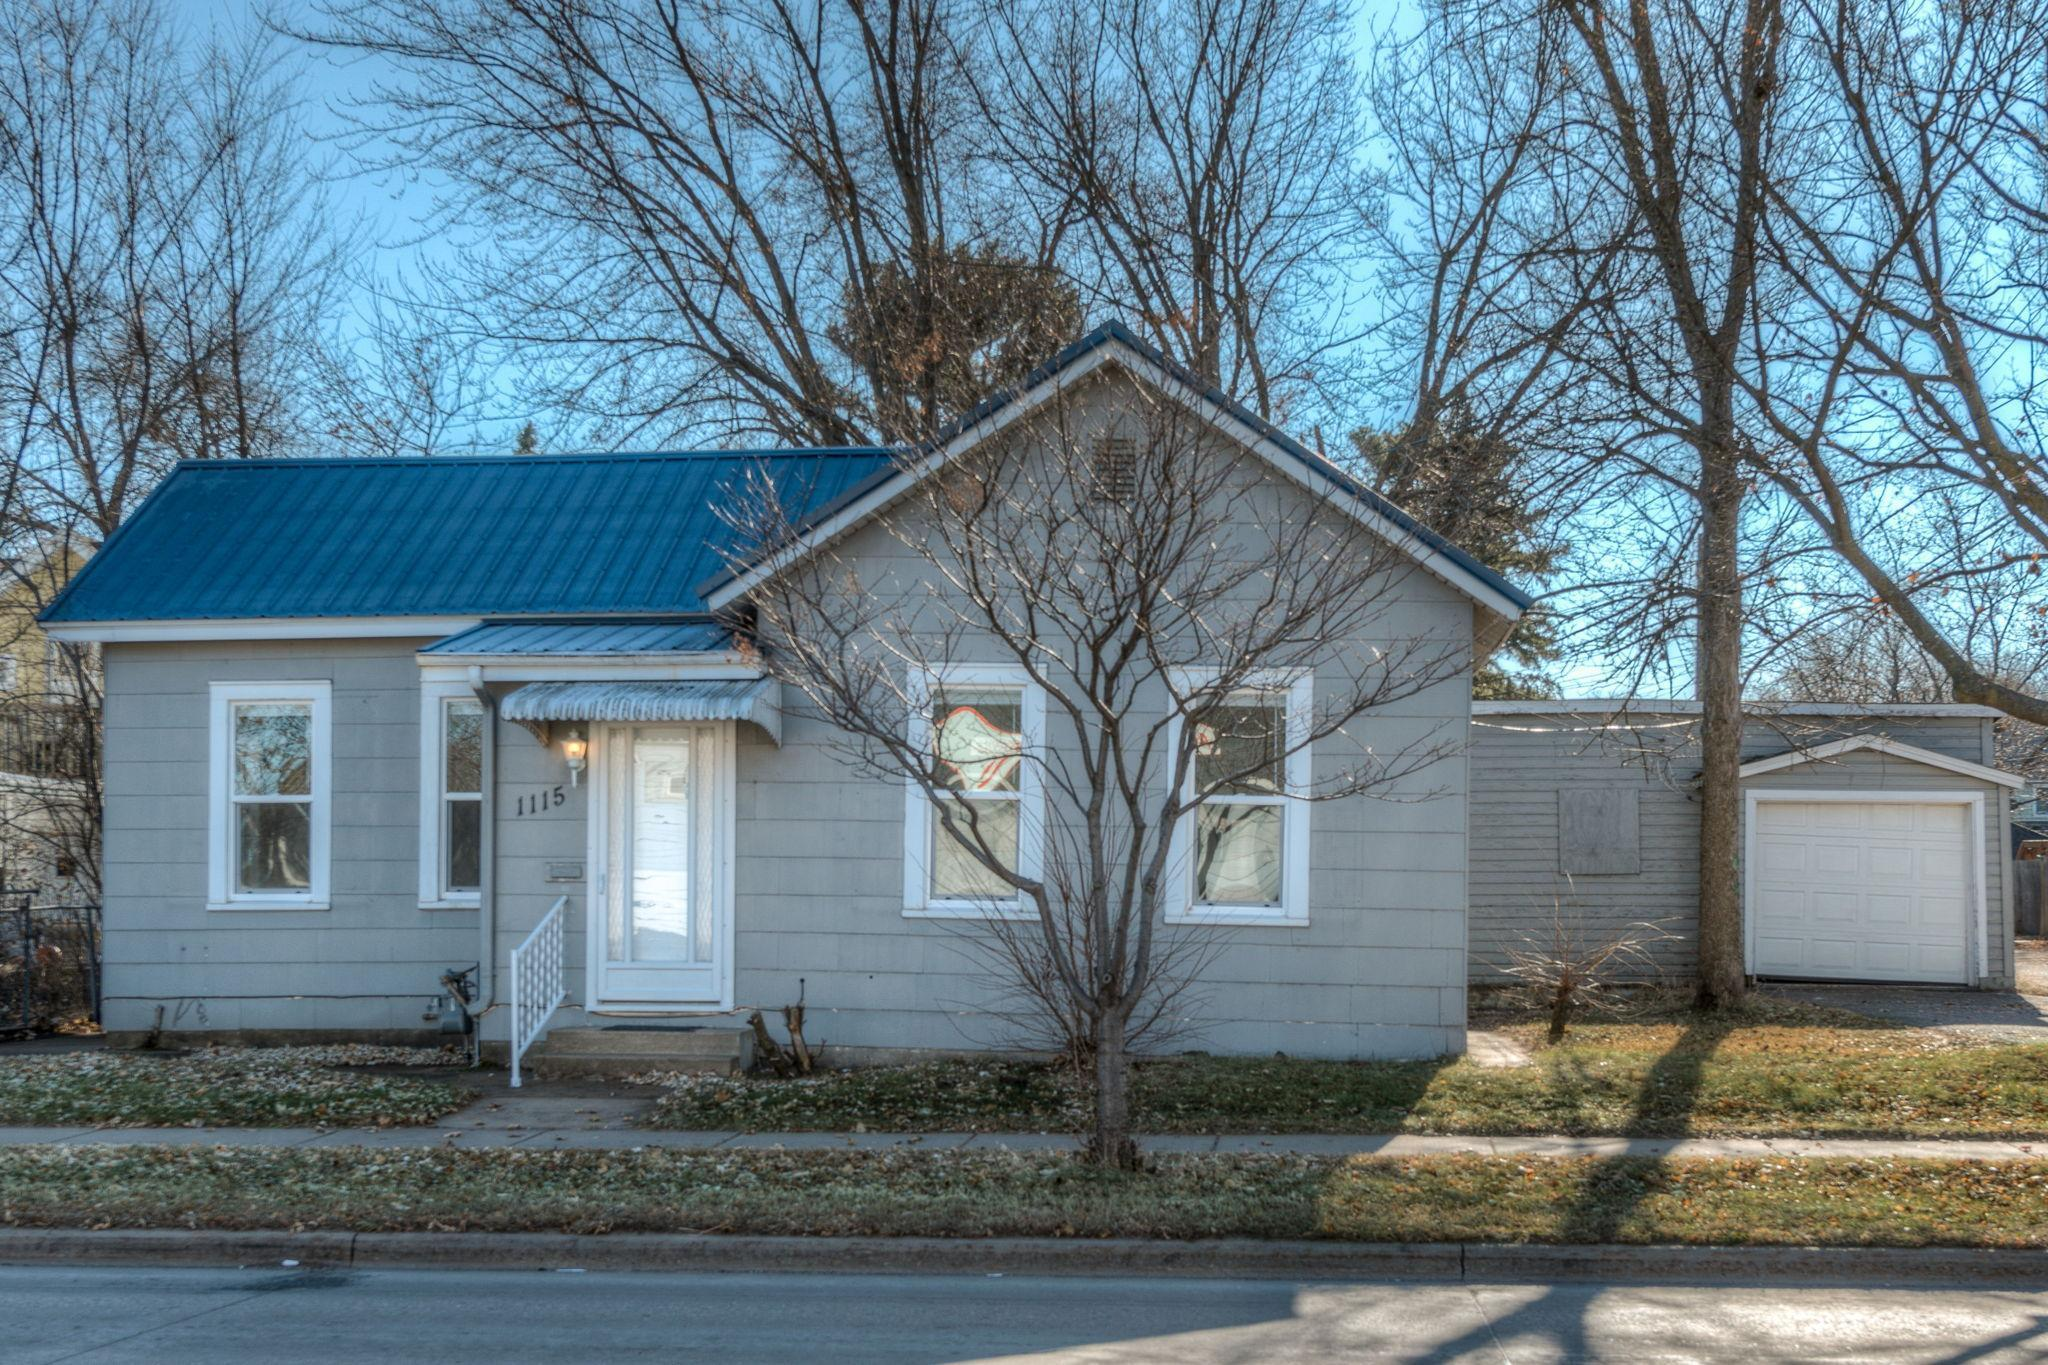 1115 Birch Street Property Photo - Eau Claire, WI real estate listing